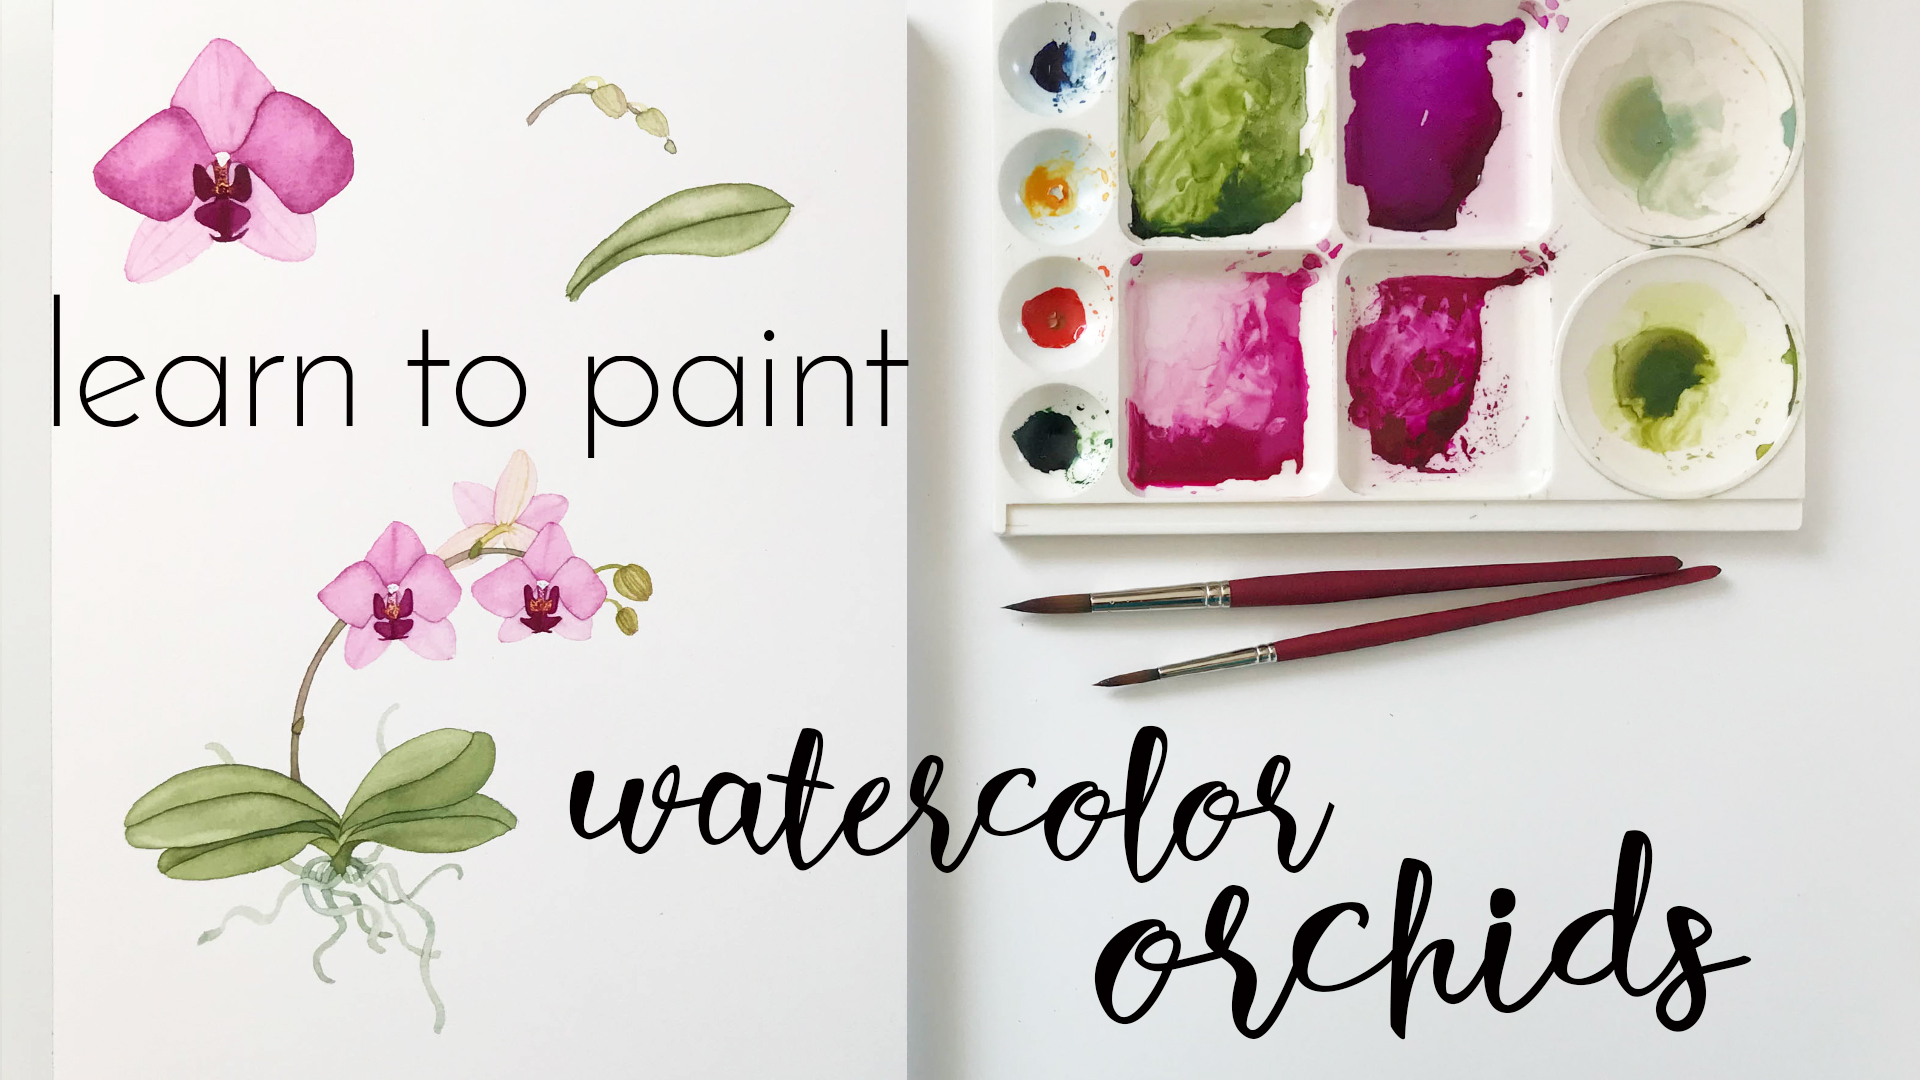 Learn to Paint Watercolor Orchids